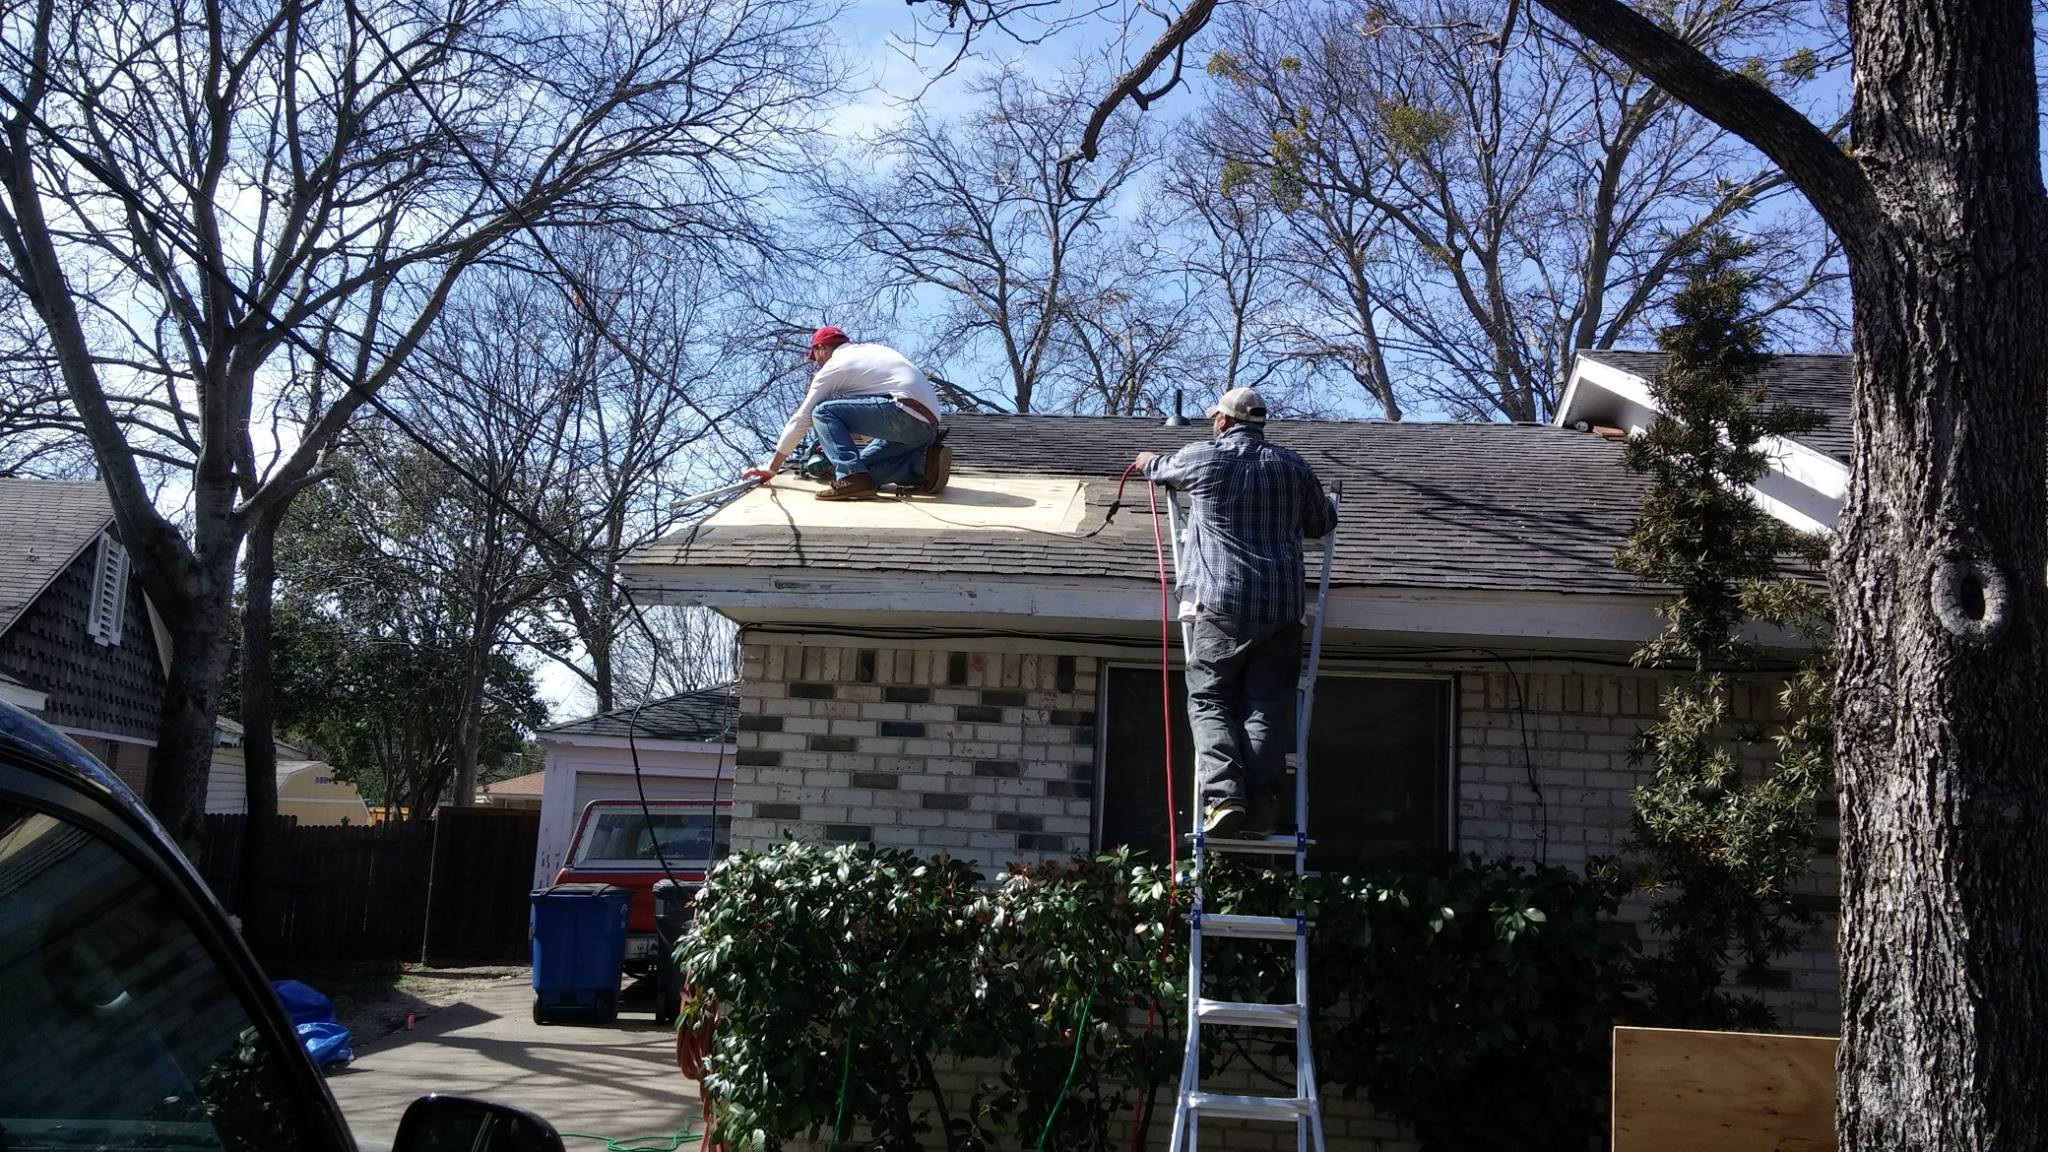 Roof Problems Inspection And Repair Services In Garland